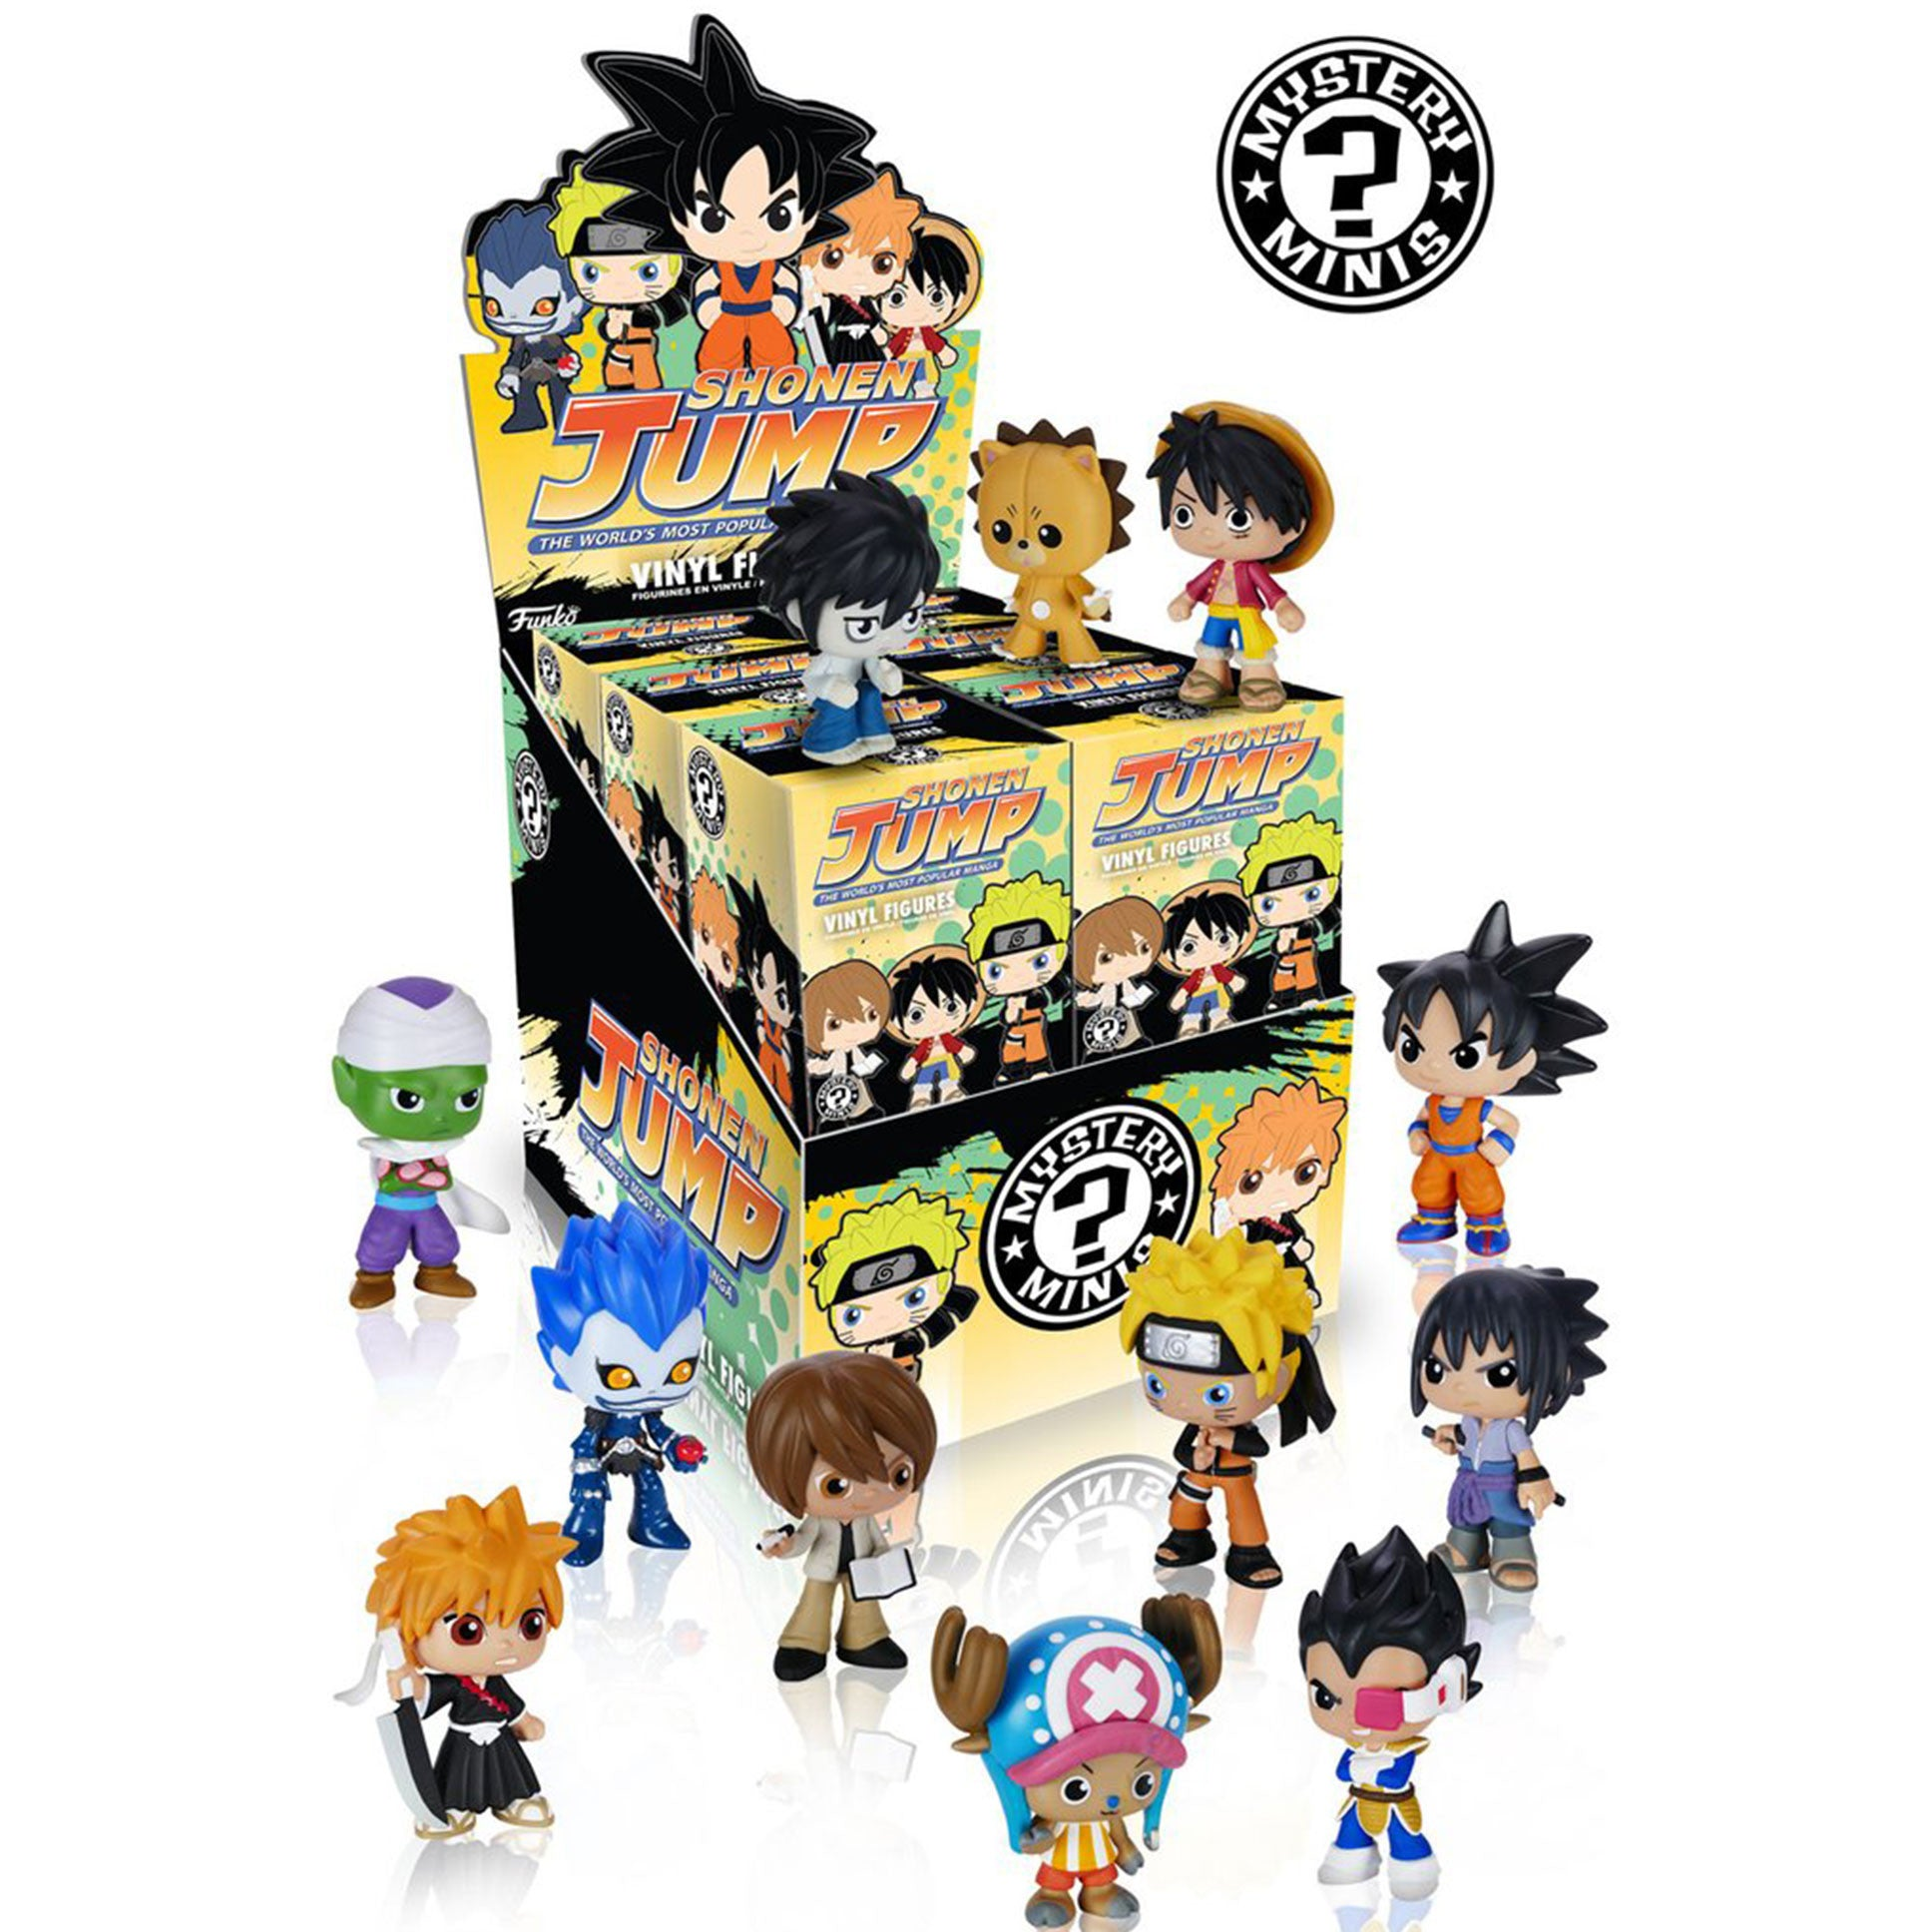 dragon blinds z mindzai anime piccolo box with minis action blind products vinyls ball